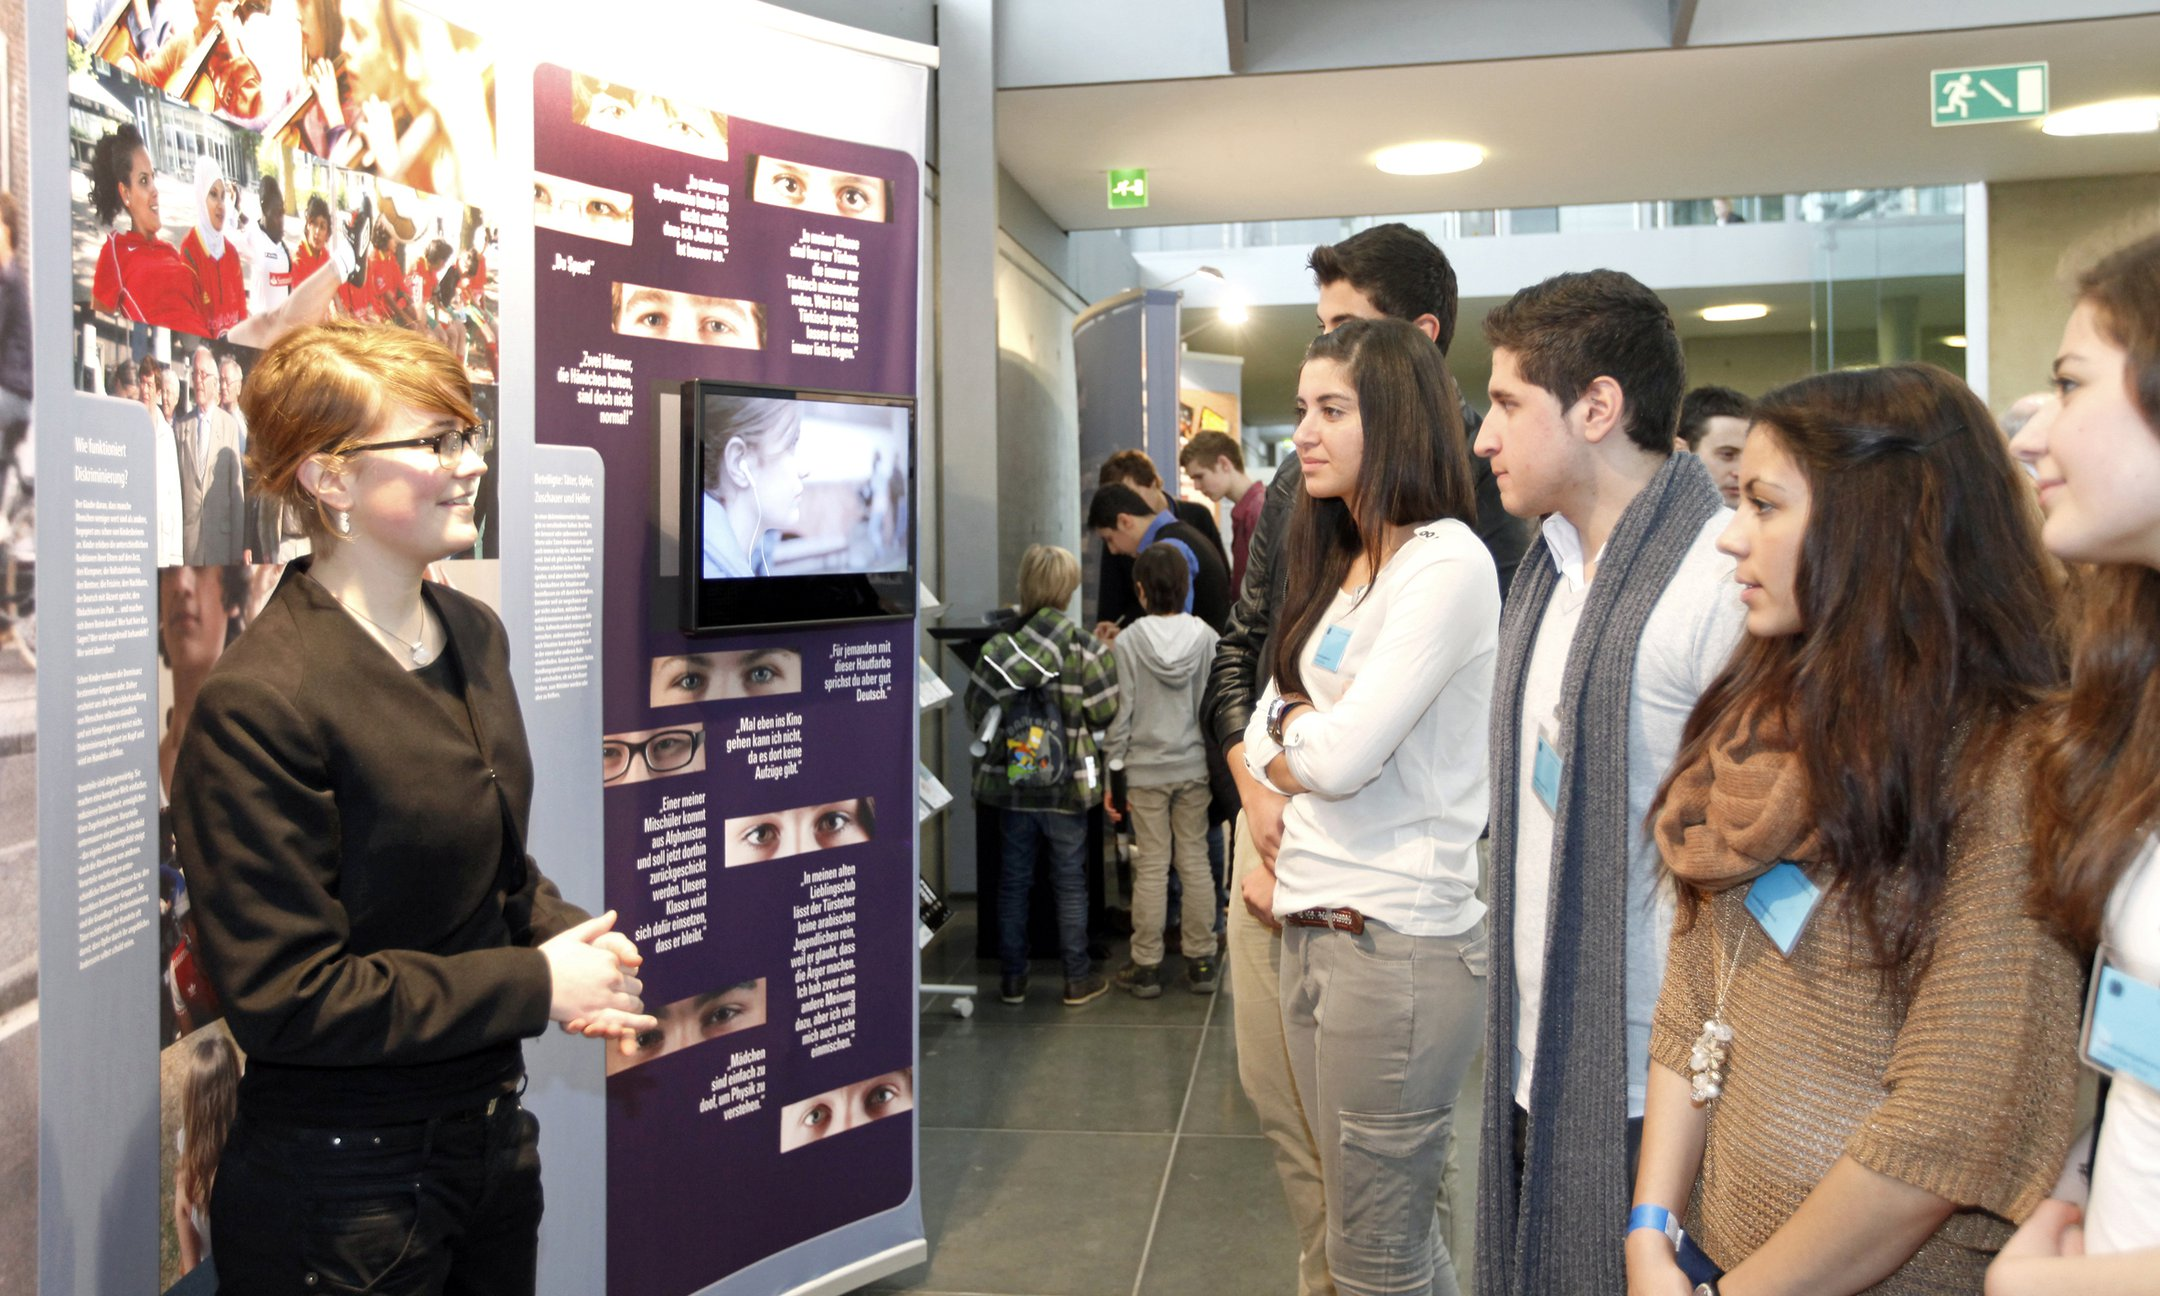 Young people lead other young people through the Anne Frank exhibition